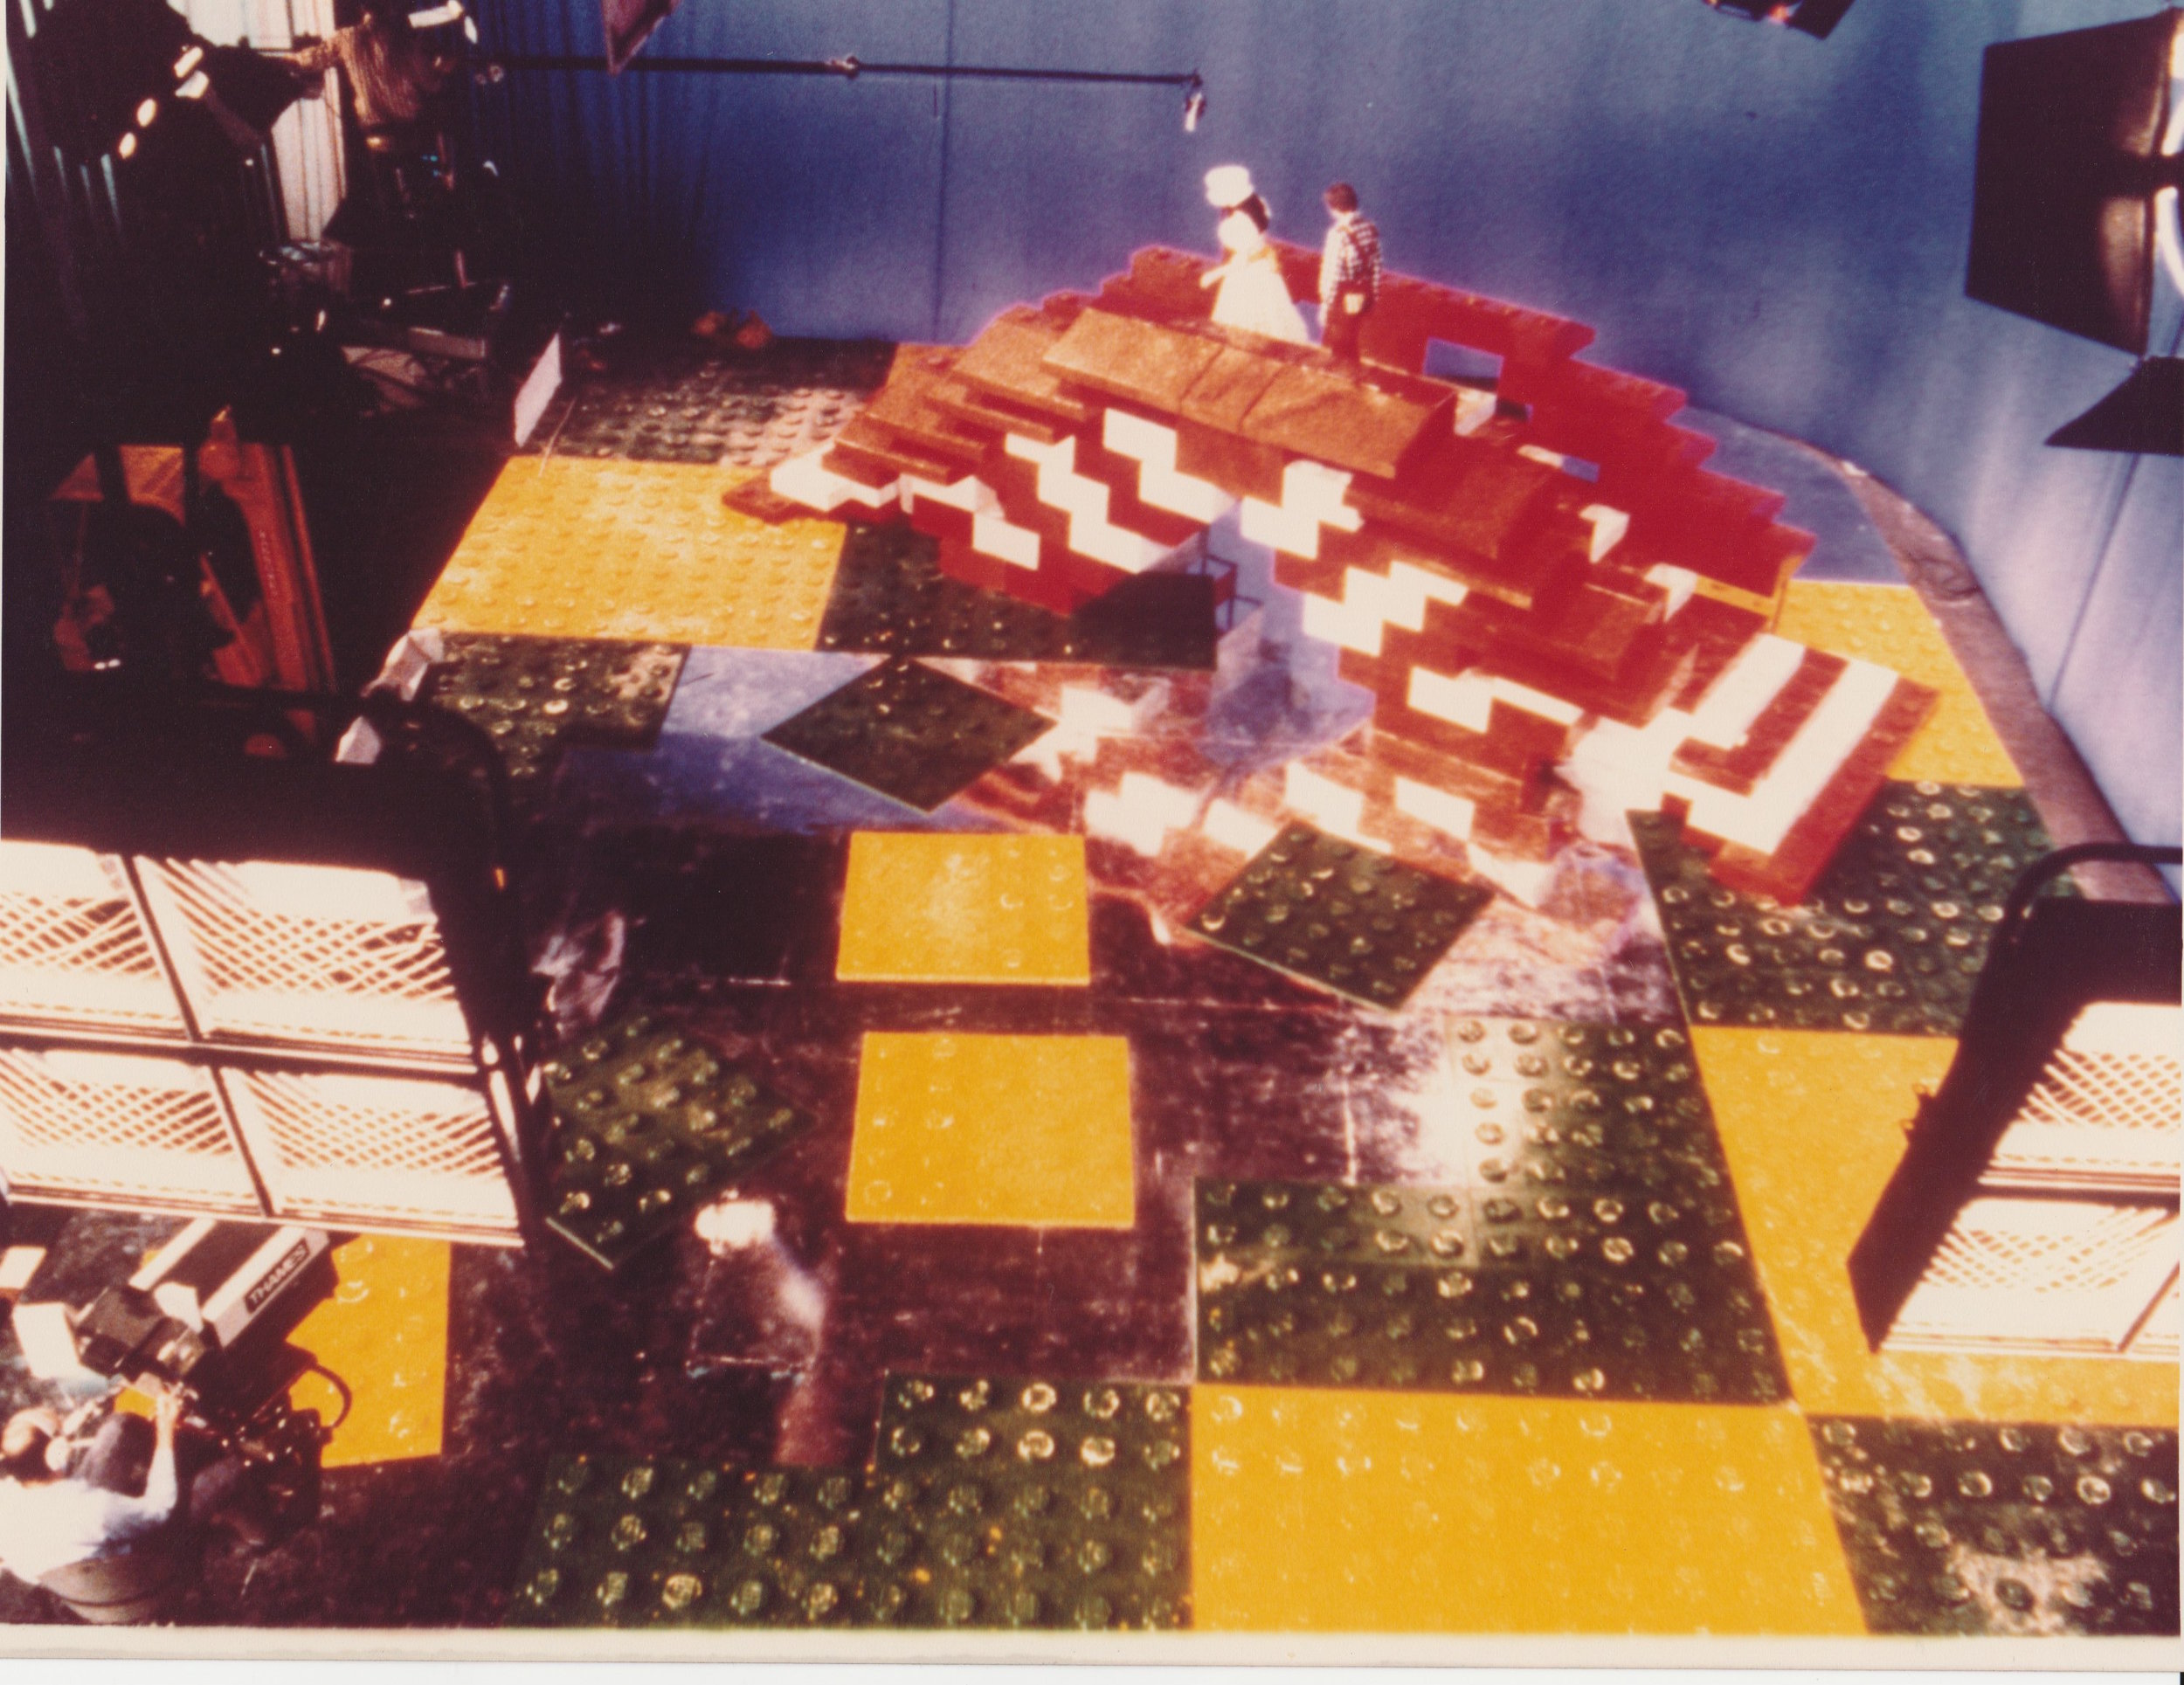 It got even worse…. - `Quincy`s Quest` was a live show, going out on Christmas day 1979 and so all props had to be on set in a working condition - definitely no second chance.The even larger mouldings for the Lego flooring had proved to be a bit of a challenge to make.Although Andrew had the facility of the overhead gantry in the workshop, which had previously been used for lifting giant marine diesel engines which were used for generating electricity for the studios, the weight and size of these moulds proved difficult to clamp tight.The internal pressure generated in the moulds was about 400 tons and so the slightest leak in a seal would result in hot molten plastic ejecting like Vesuvius and thus coating the ceiling of the workshop with a skin of insulation and of course any unfortunate workers in the near vicinity.A quick change of tactics caused Andrew to abandon the moulding process and quickly make thousands of individual round Lego locking pieces to glue onto wooden boards. They would then have to be painted in yellow & green to match real Lego.It was the day before Christmas and the deadline was near and so Andrew mustered everyone he could convince to help, even calling on his old friend Trevor Baylis, (clockwork radio inventor) to come out and work a 24 hour shift on Christmas eve.Andrew`s idea was to paint the giant lego floor with Polyester fibreglass resin. It should cure quickly to a hard resilient surface and could be pigmented to any colour.On a cold winter's night, this did not happen - it would not cure and remained a sticky mess even when presented on set.Complaints from the actors were rife as their shoes parted from their feet, especially noticeable in the dance sequences.Andrew did not attend the shoot that day and waited for the Christmas holidays for it all to blow over…..or at least let the paint dry, In the hope that the show was a spectacular success and everyone would forget the cock- ups.